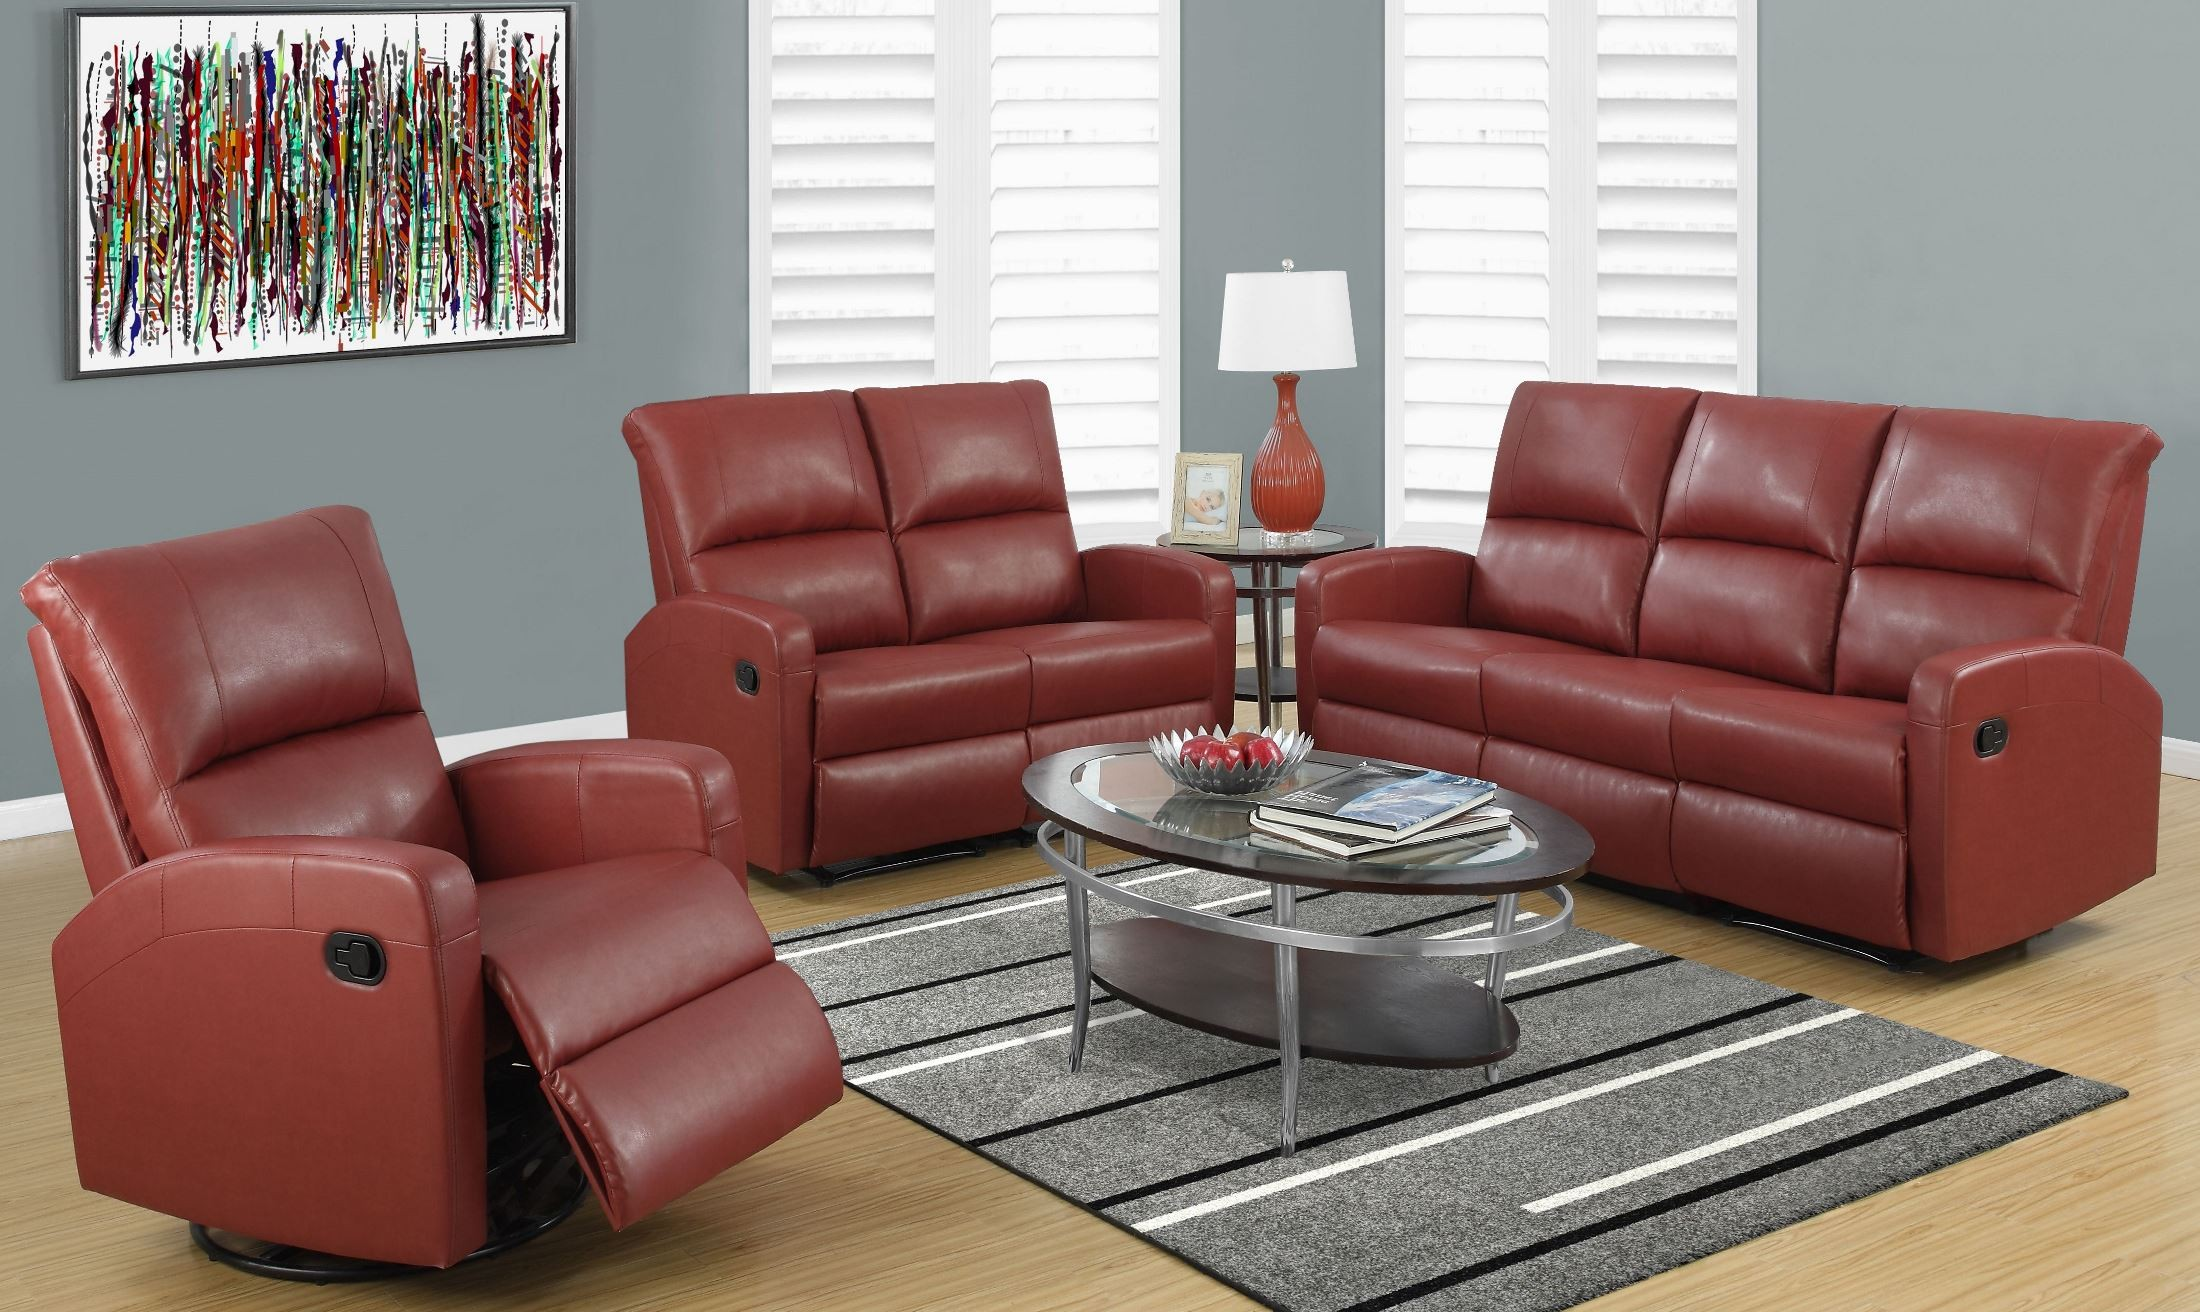 Red Bonded Leather Reclining Living Room Set From Monarch Coleman Furniture